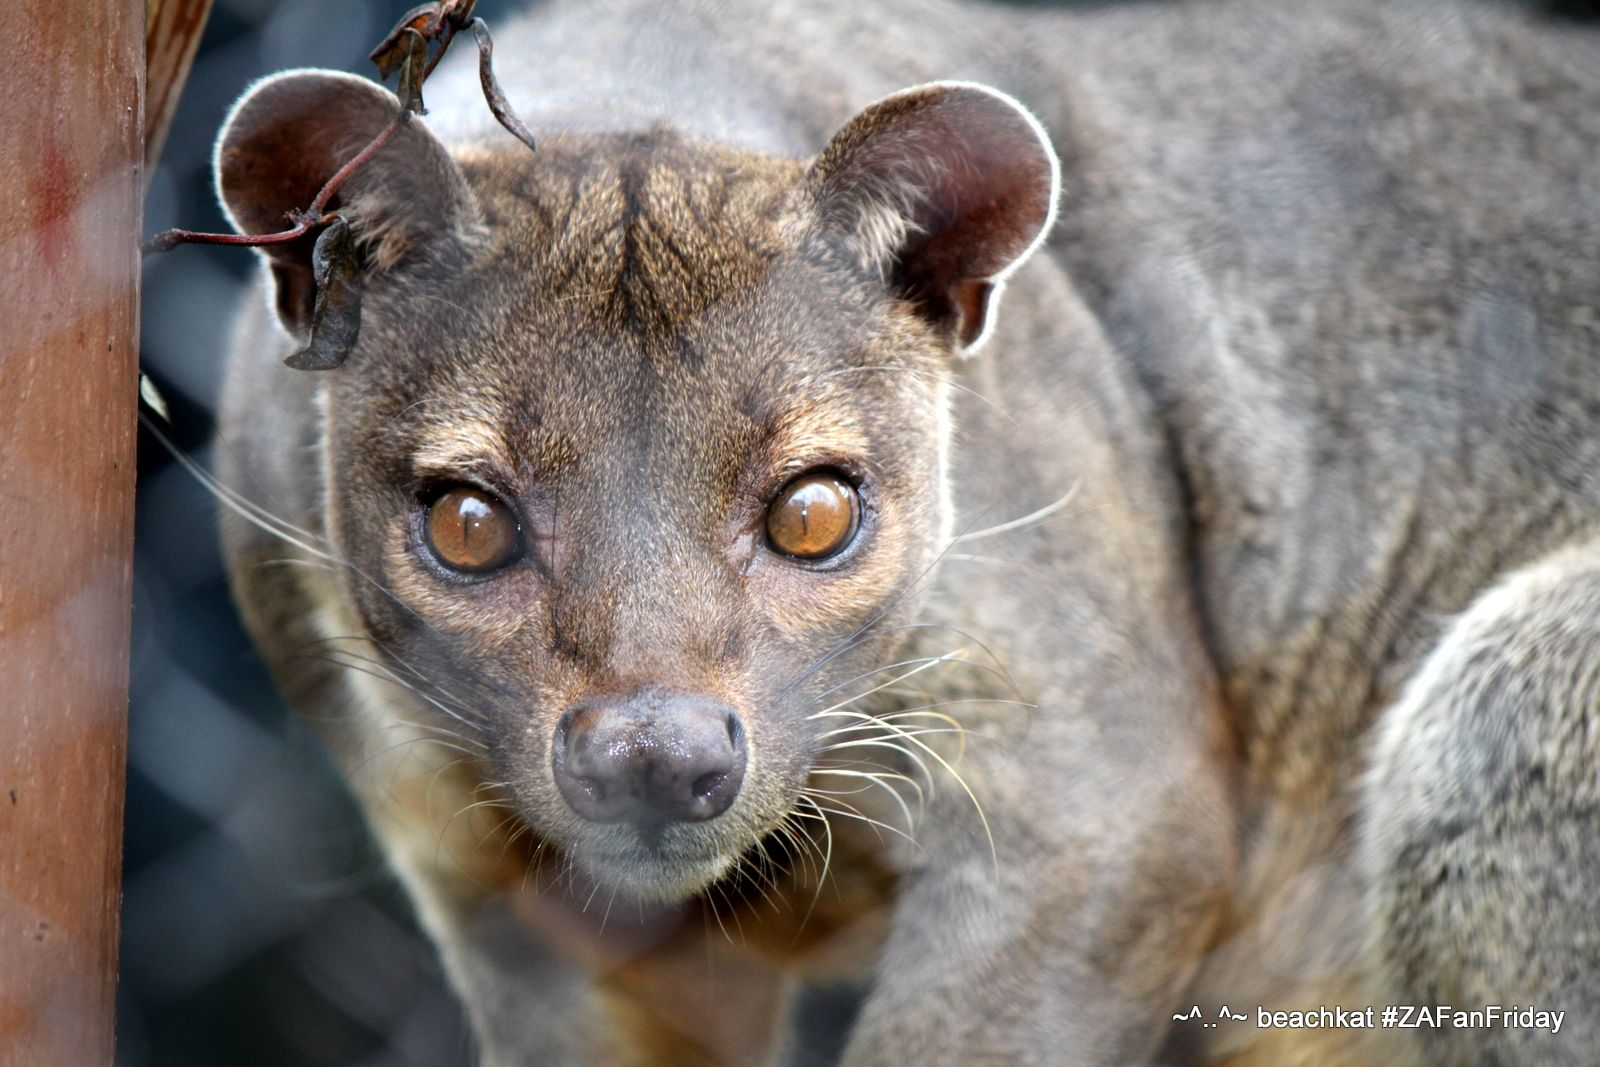 #ZAFanFriday Logan, the Fossa from Madagascar @zooatlanta